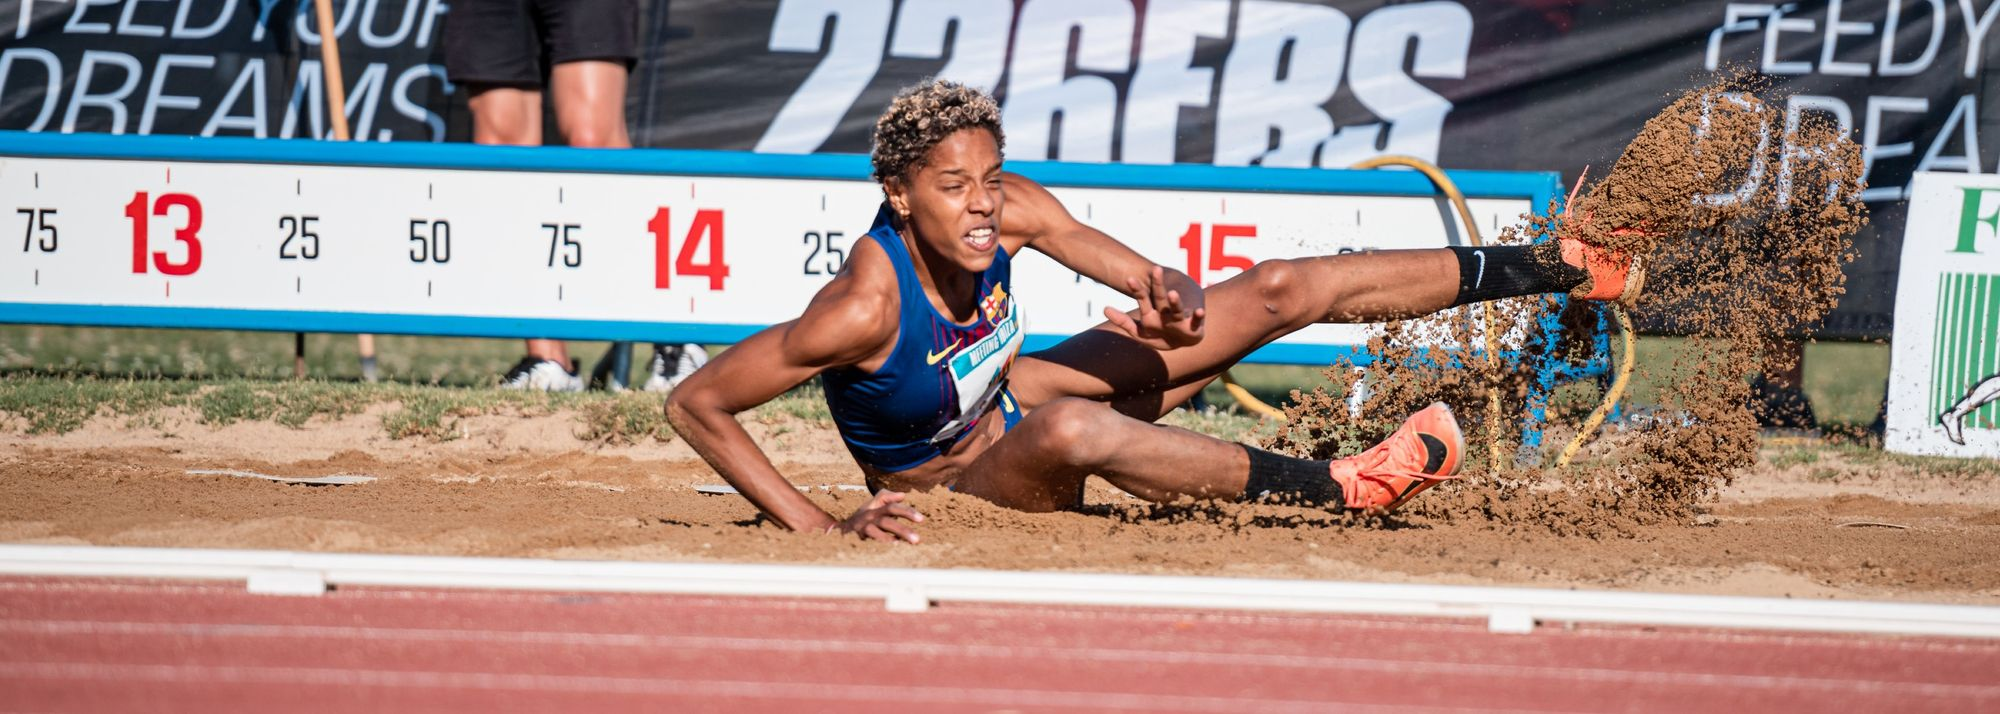 World triple jump champion Yulimar Rojas started her Olympic season in style, leaping a world-leading 15.14m (2.0m/s) to win at the Meeting Toni Bonet in Ibiza, Spain, on Saturday (8).